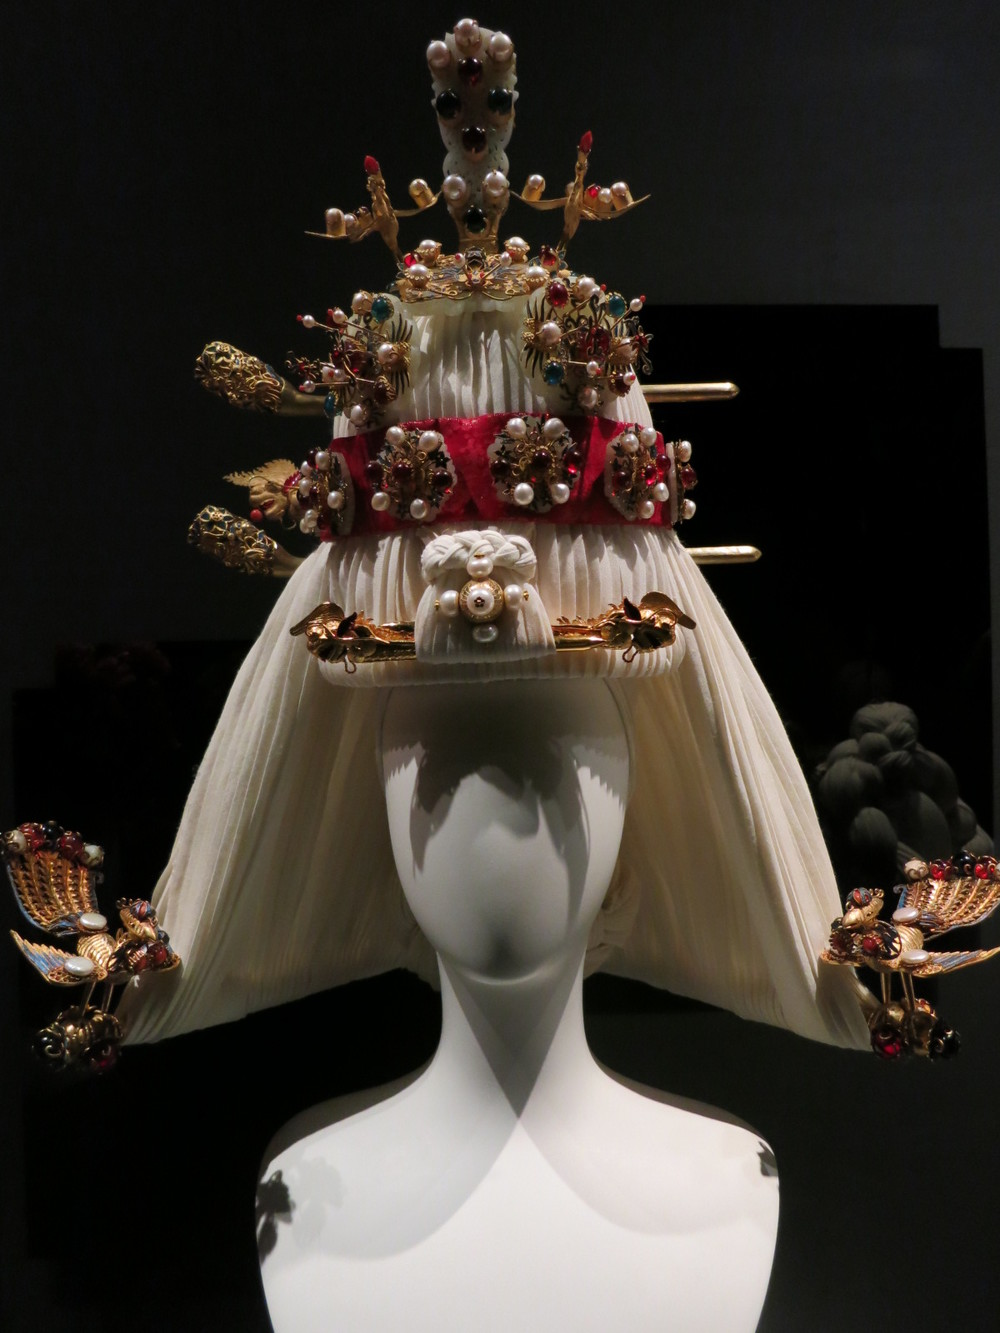 'Korea Now' exhibition at the Musee des Arts Decoratifs. Closes on the 3rd January 2016. Contemporary 'parure finery'